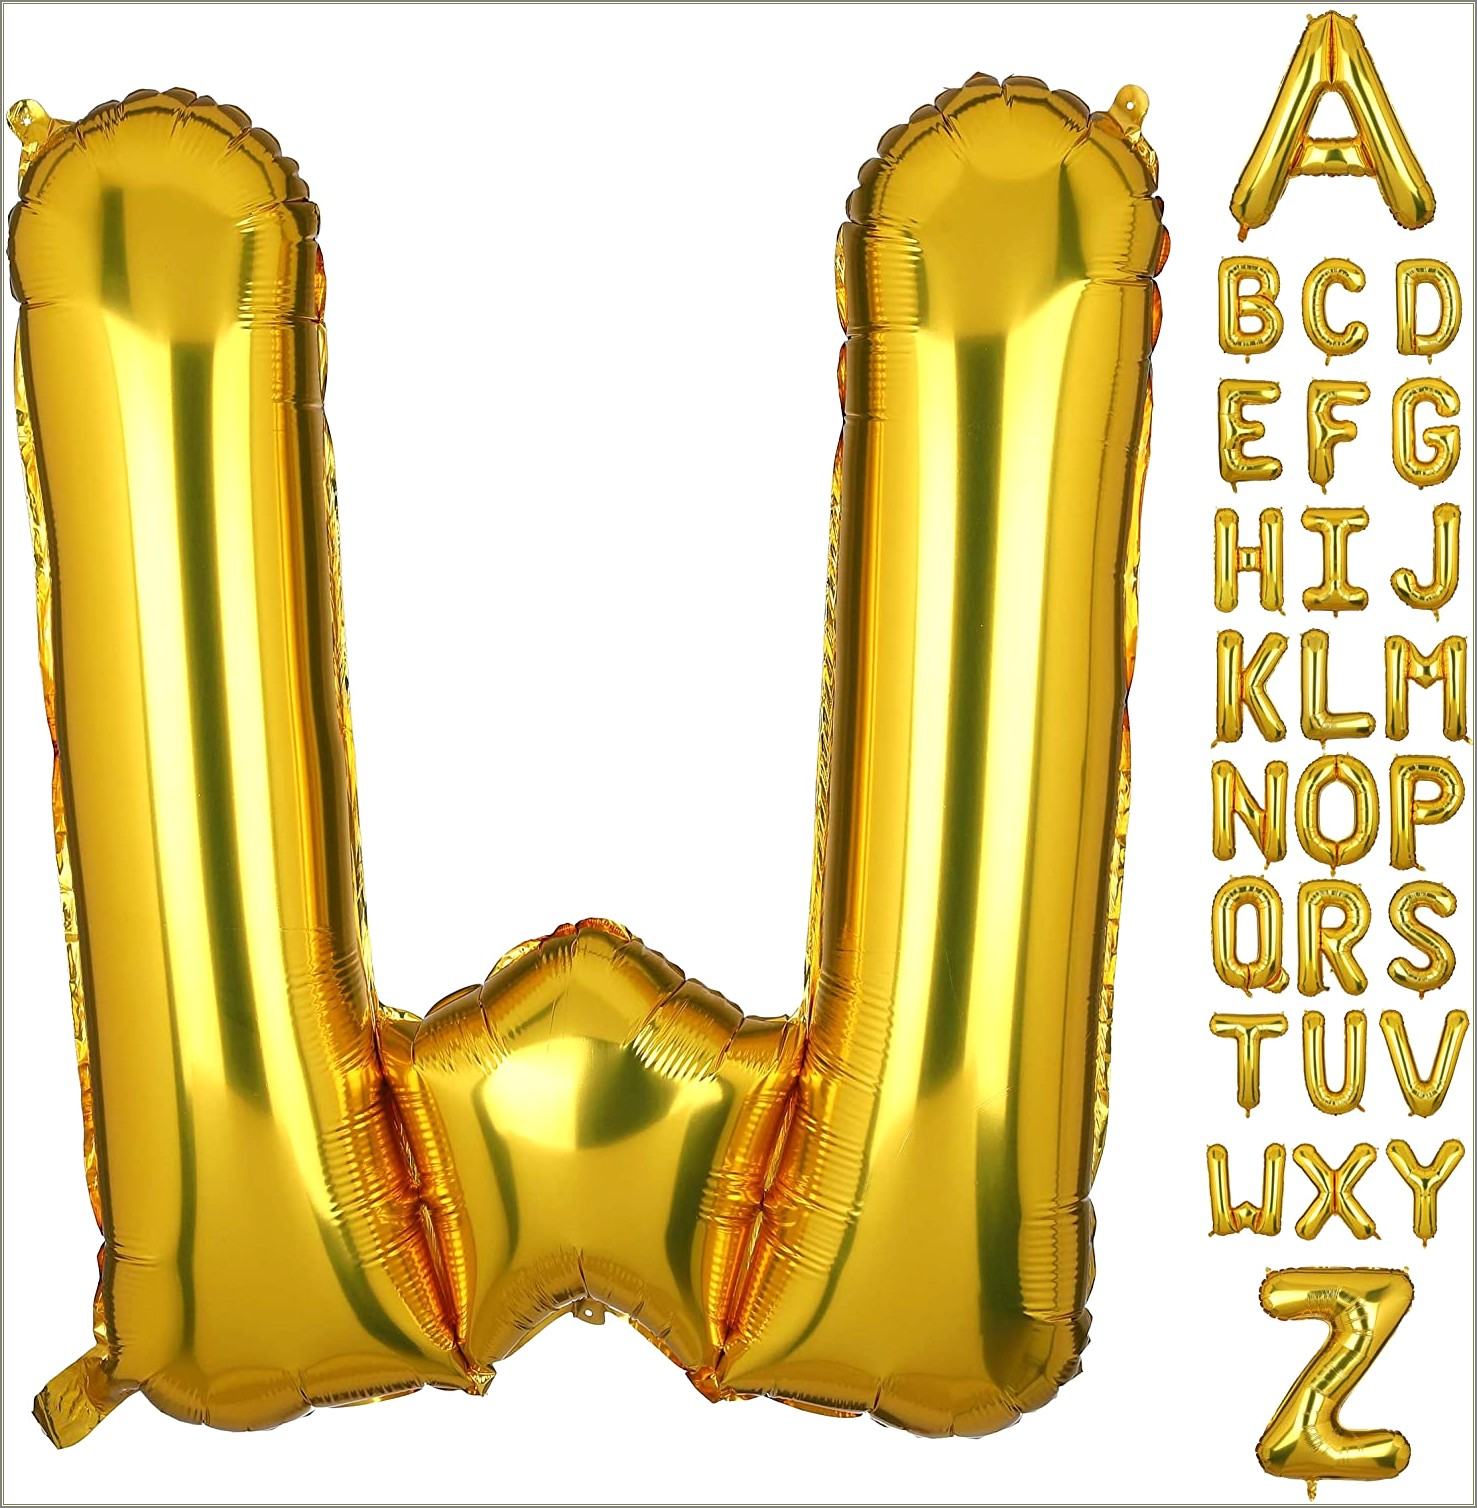 40 Inch Letter Balloons